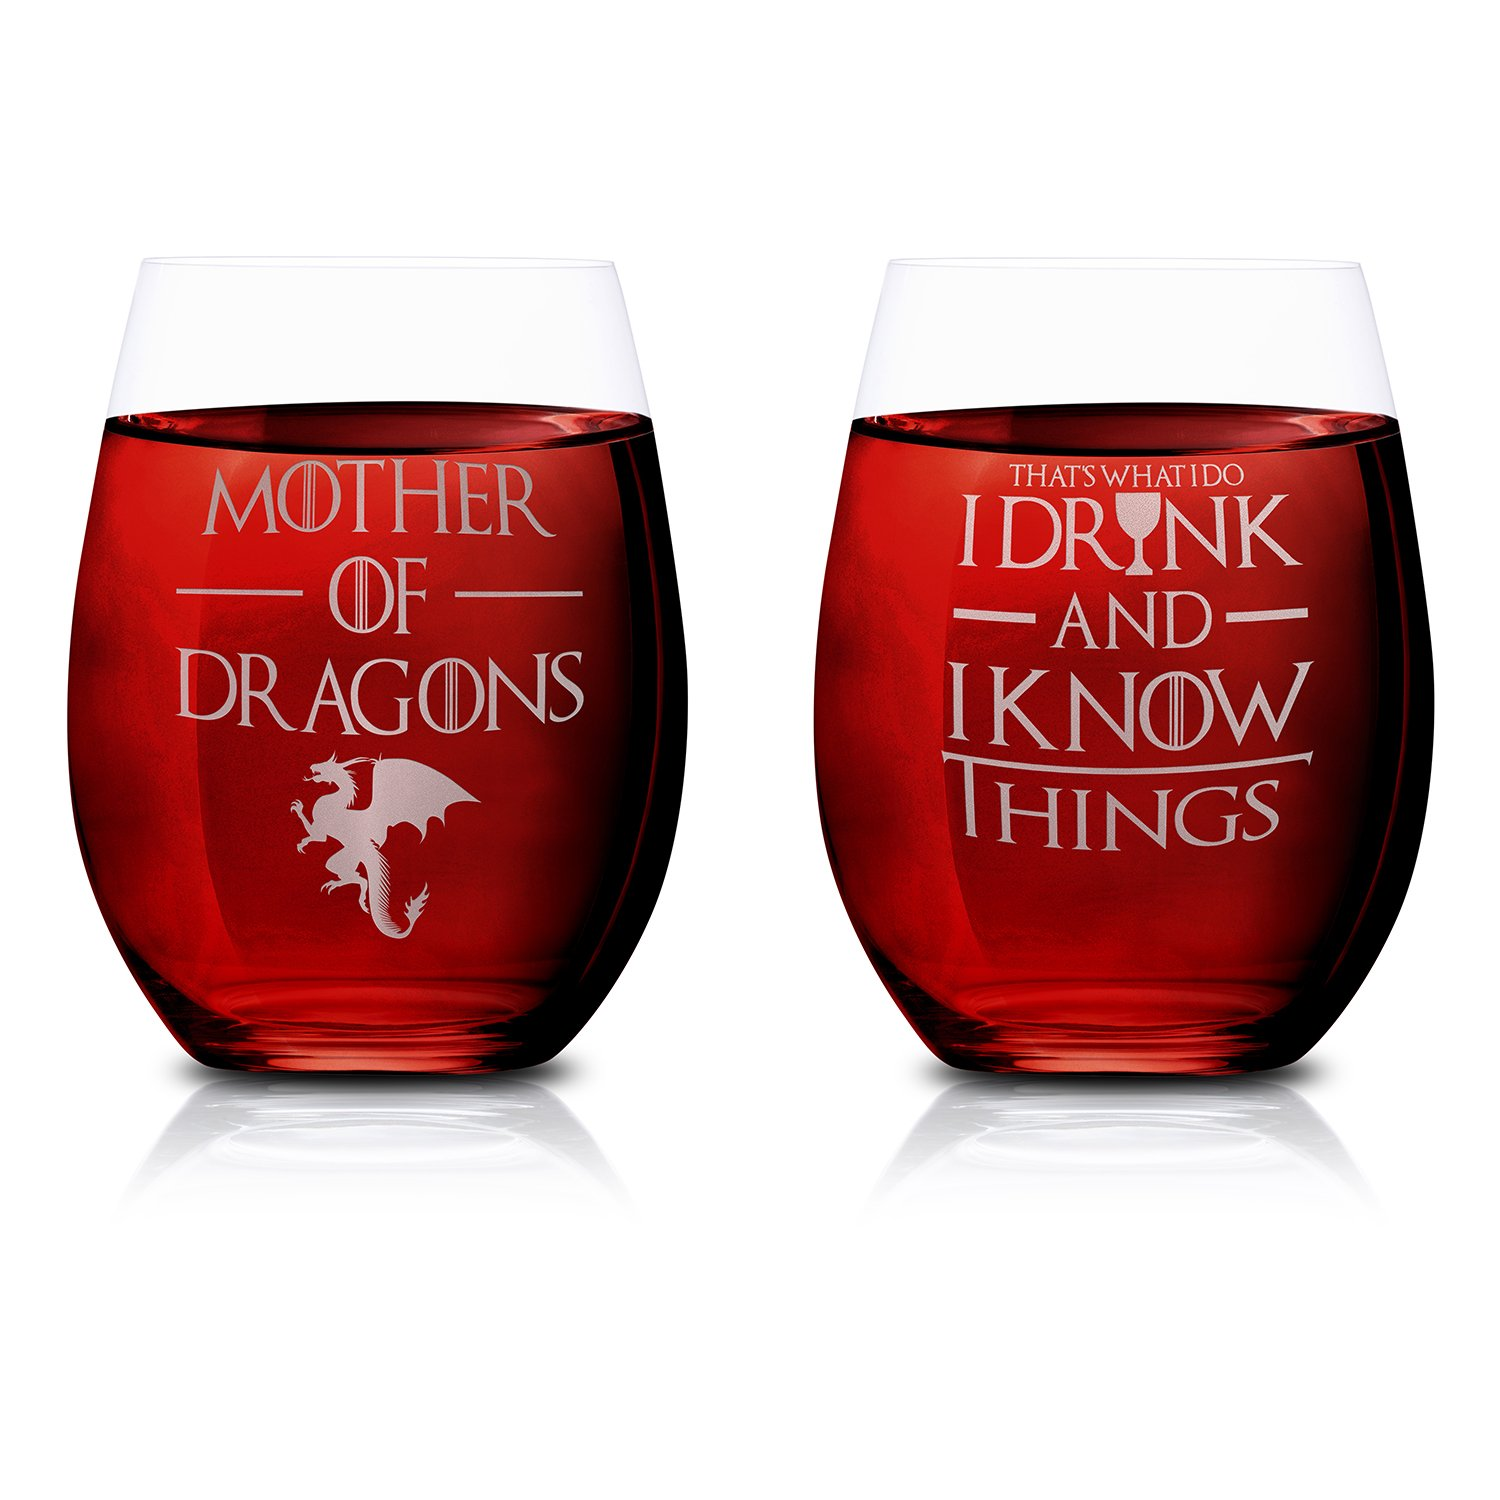 Game Of Thrones Wine Glasses - Mother of Dragons & That's What I Do I Drink And I Know Things - Set of 2 - Fathers Day Gift for Dad - Stemless Glass 15 oz by FOLE - Made in USA